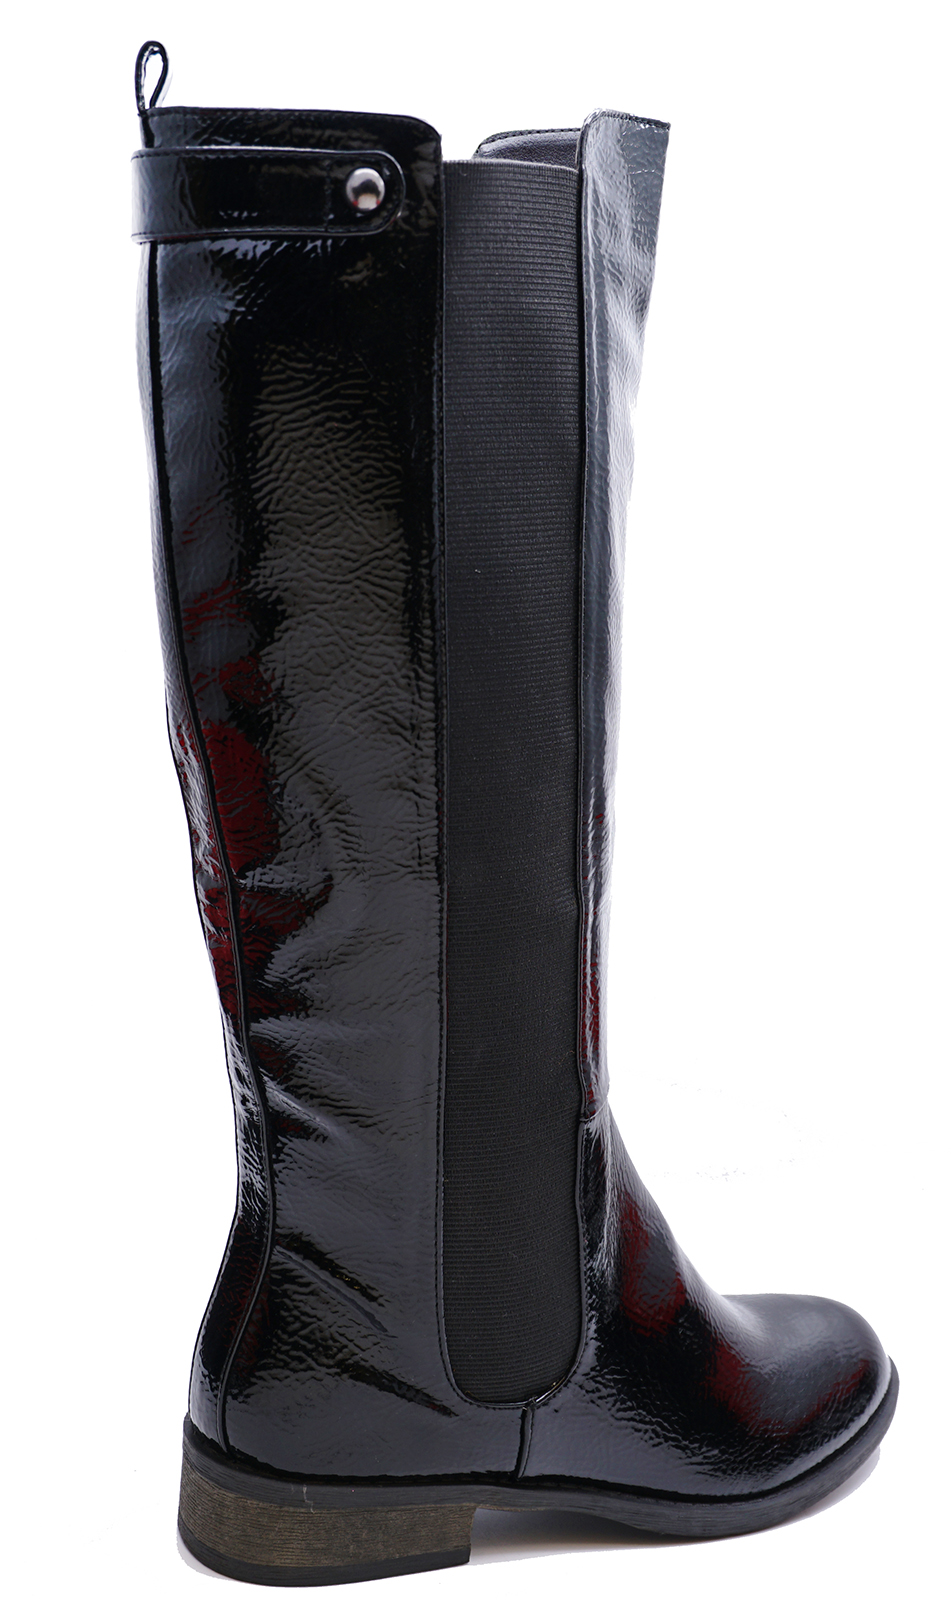 LADIES-BLACK-PATENT-STRETCH-ZIP-UP-KNEE-HIGH-TALL-RIDING-BOOTS-COMFY-SHOES-3-8 thumbnail 7